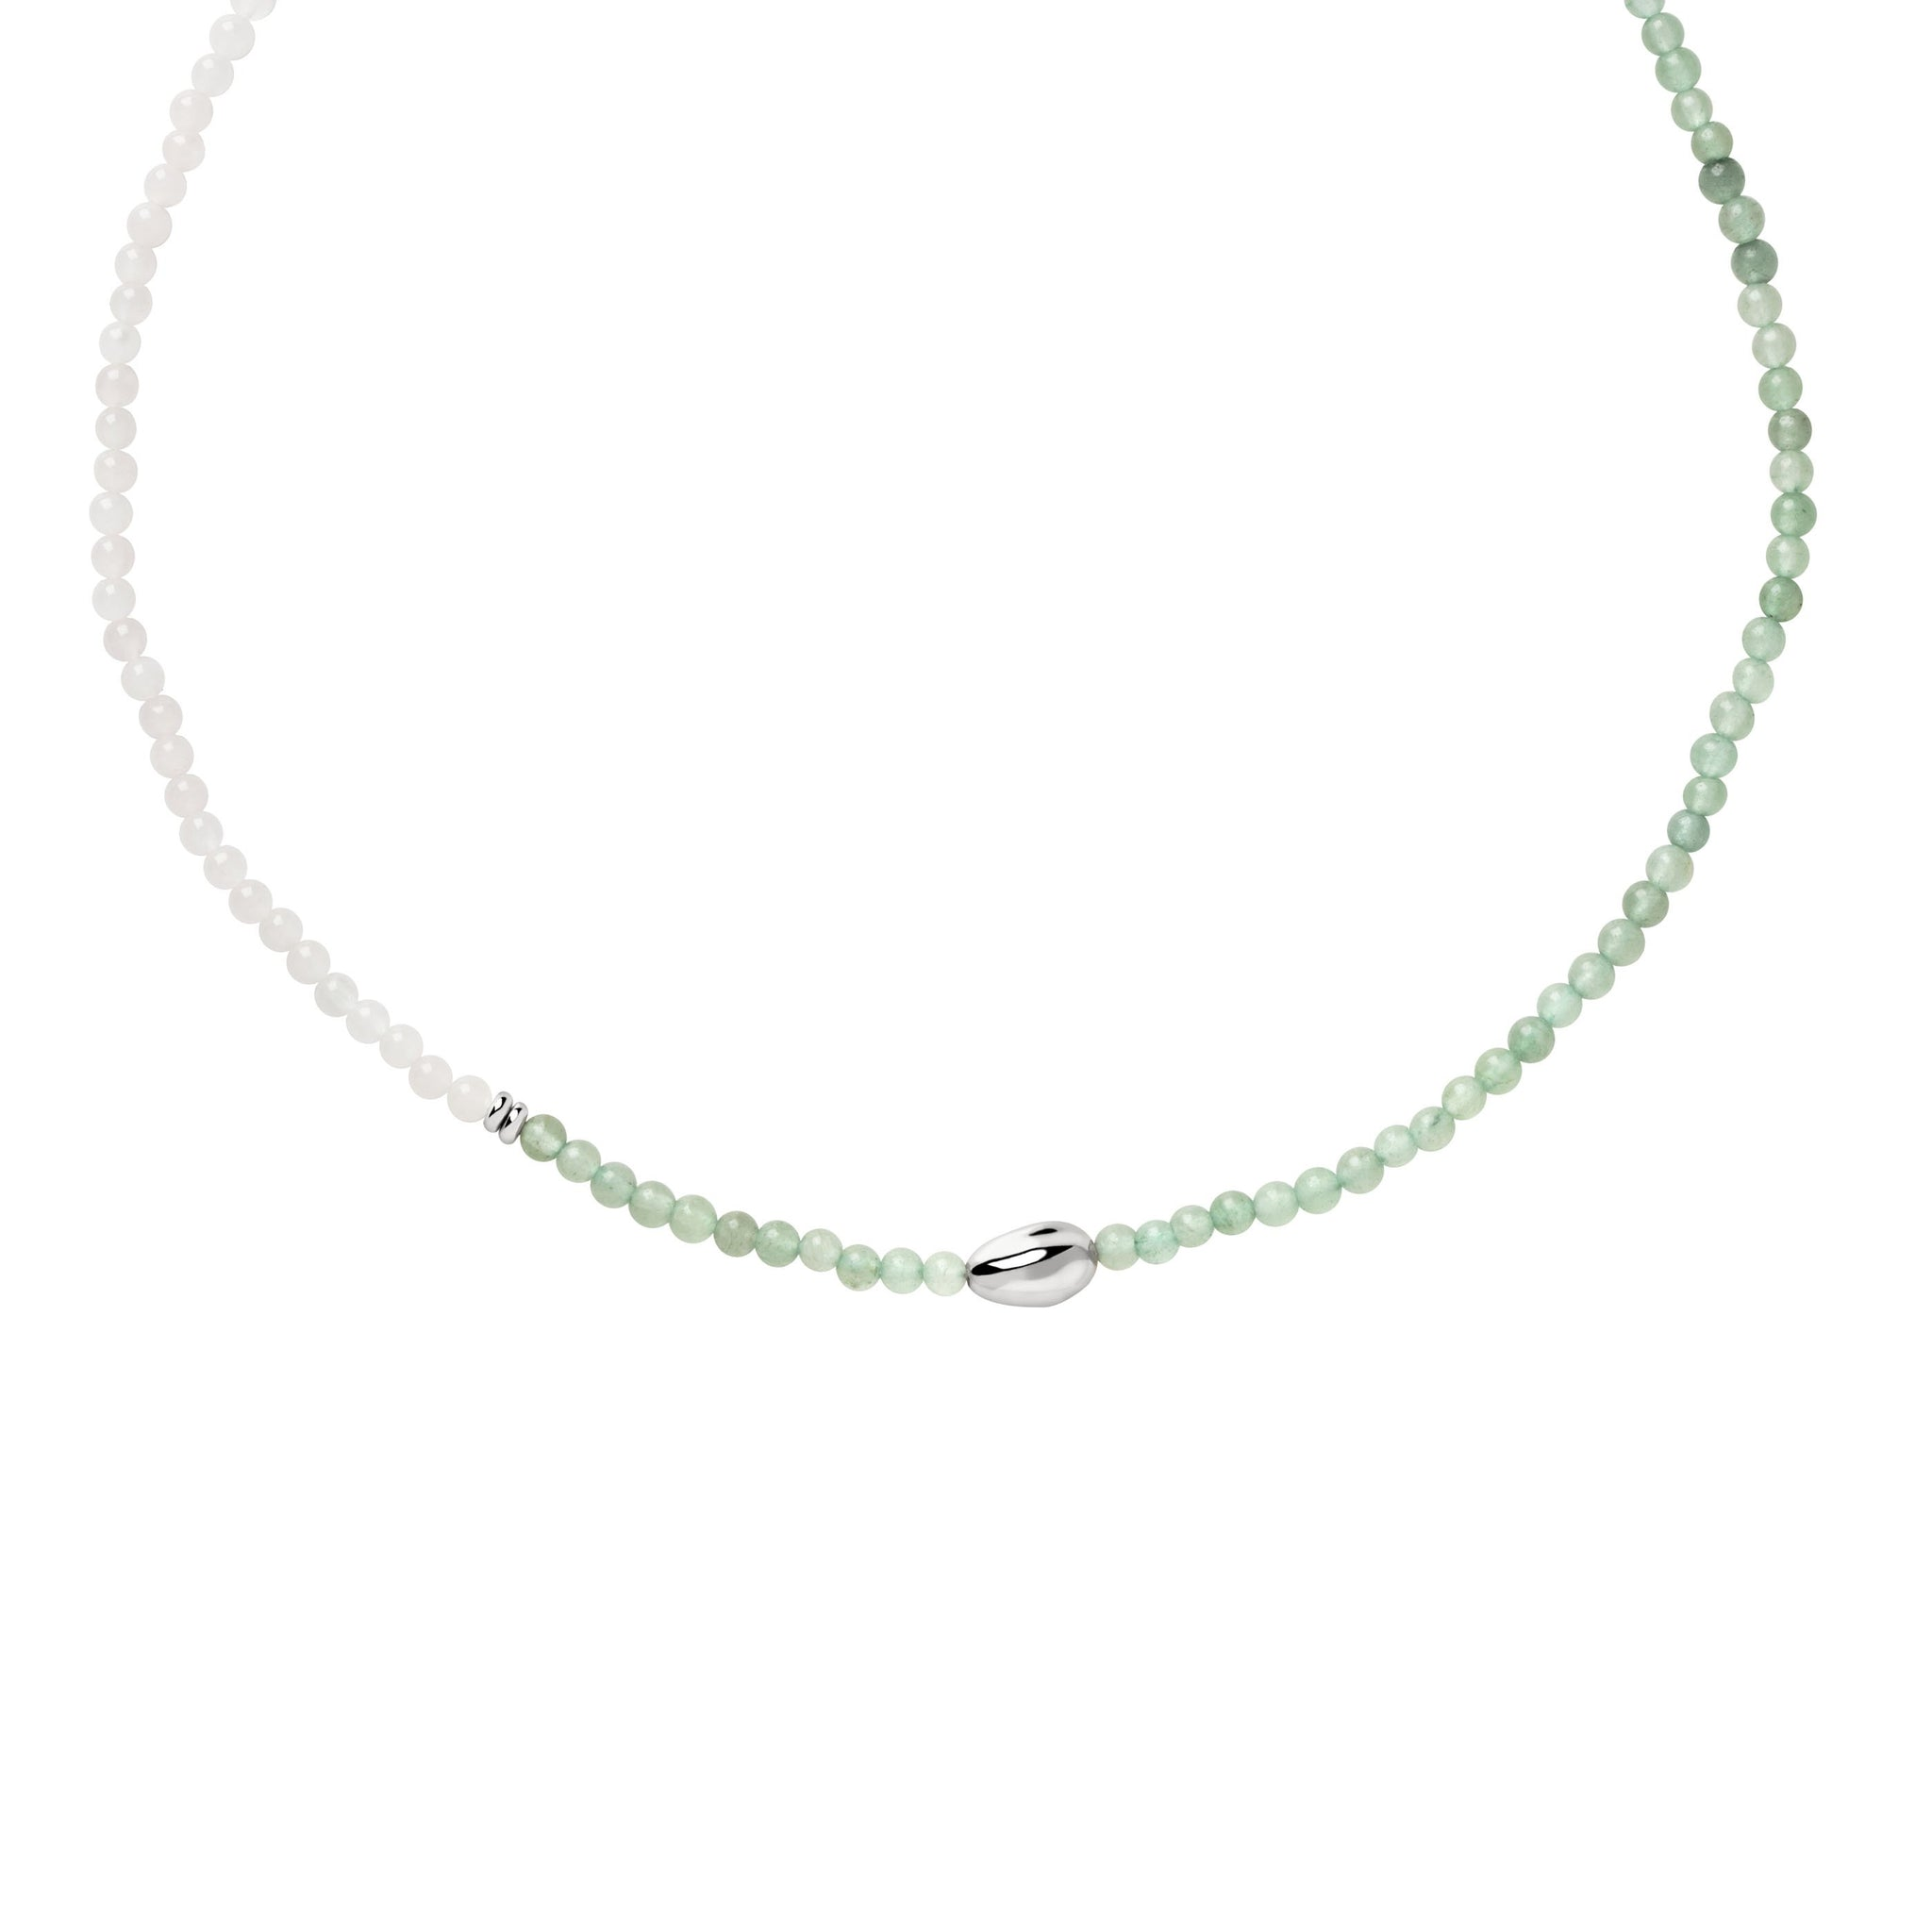 Harmony Aventurine Necklace in Silver